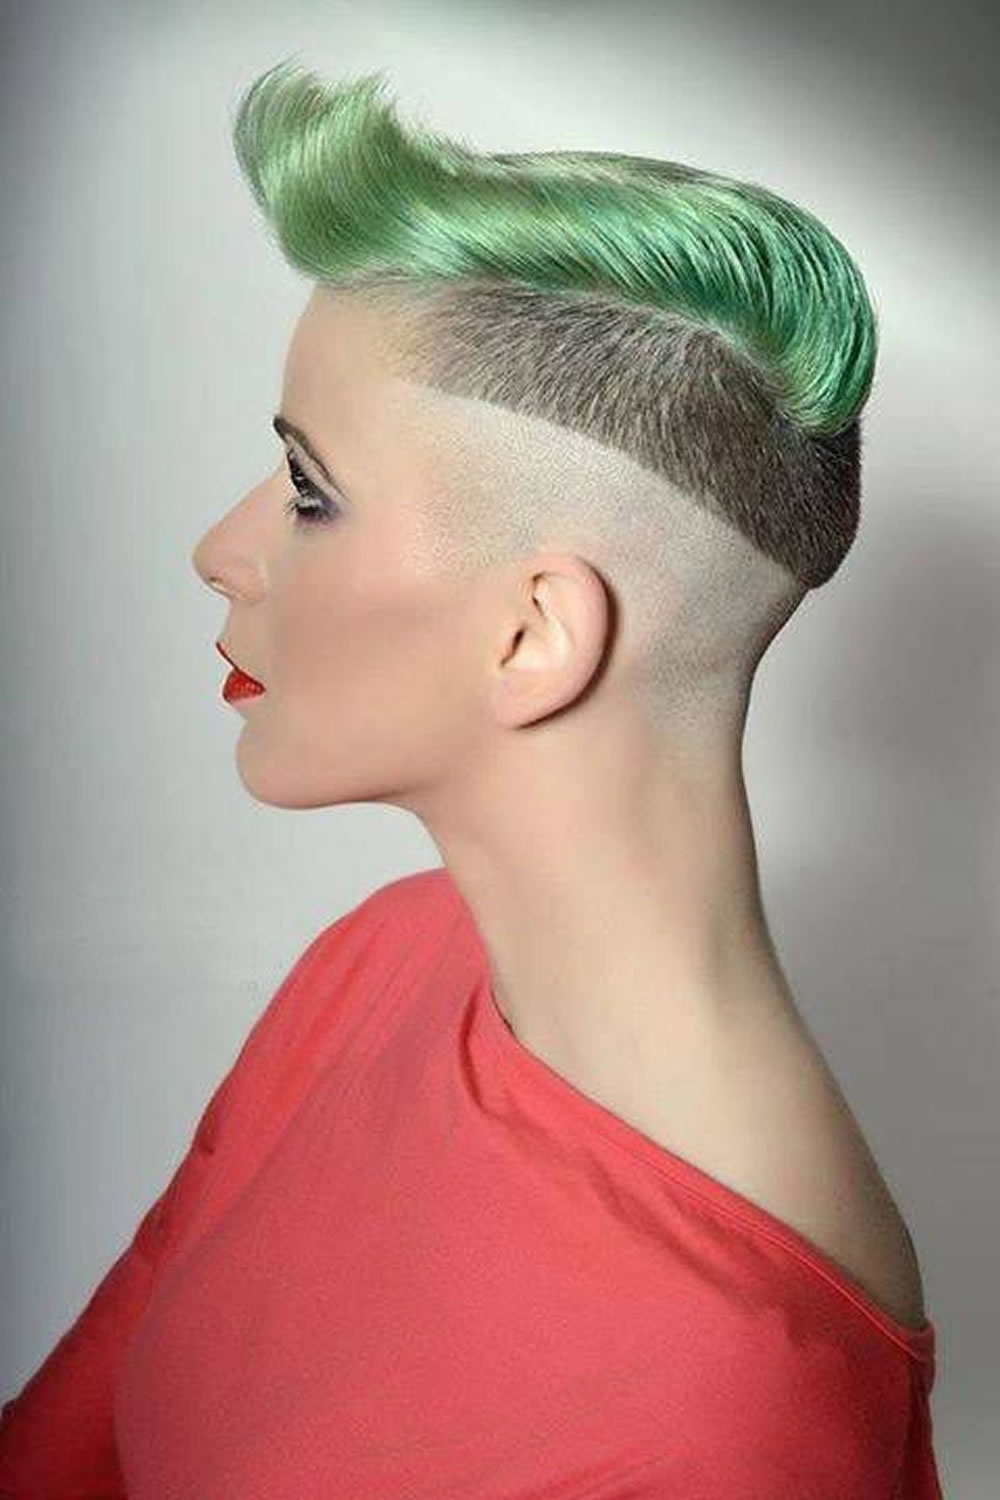 Feminine Extreme Short Haircuts For Ladies 2018 2019 – Hairstyles Within Short Feminine Hairstyles For Fine Hair (View 22 of 25)